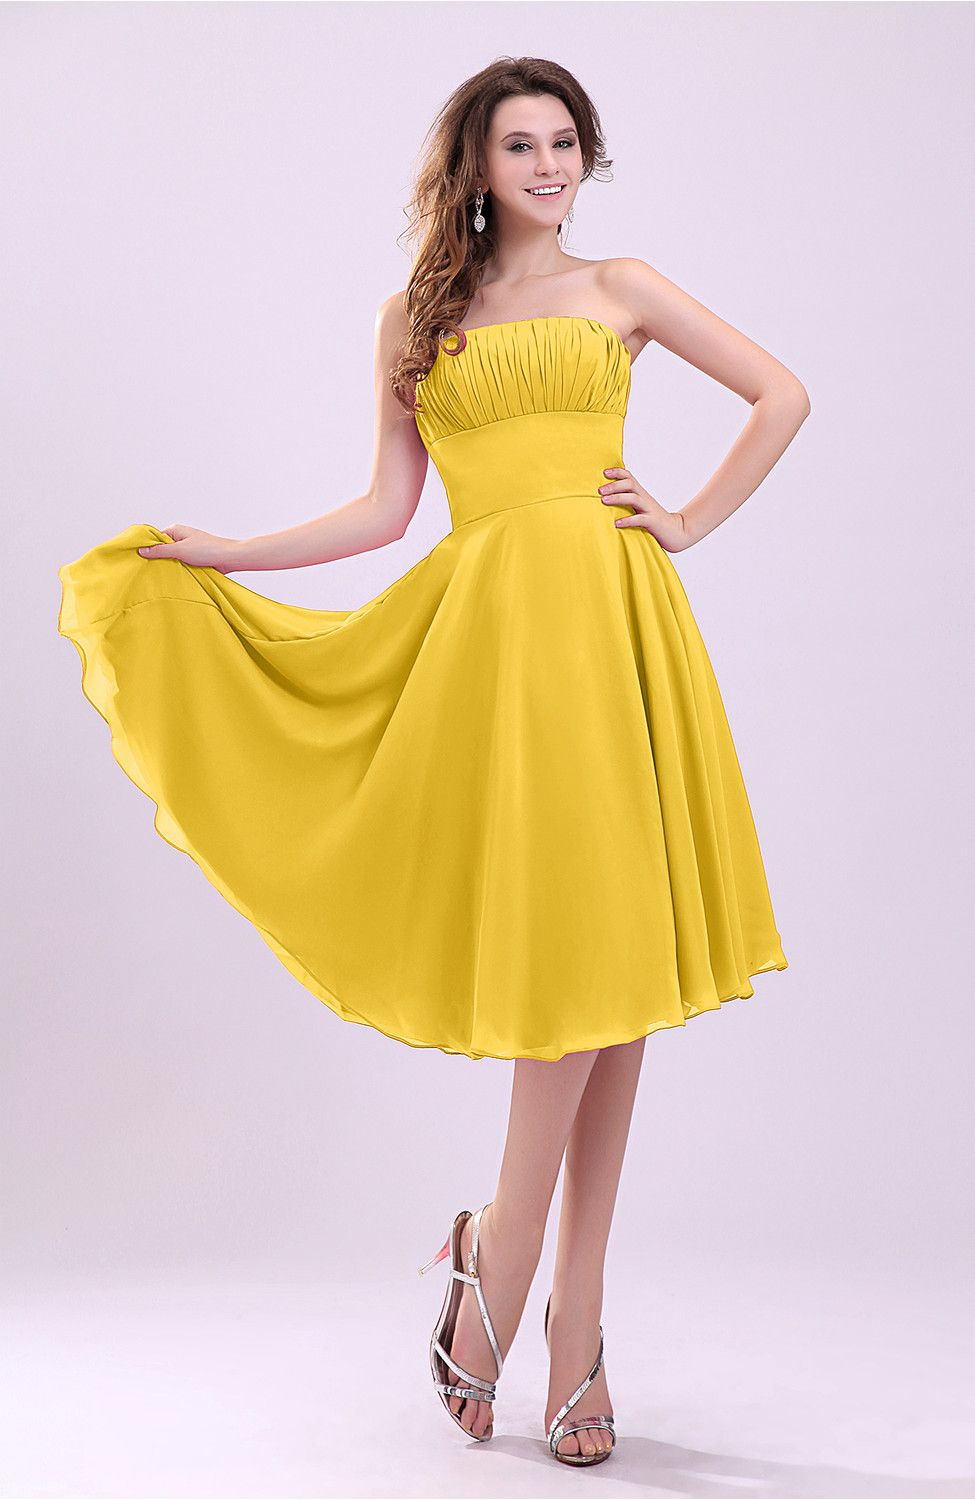 Yellow dress wedding guest  Yellow Guest Dress  Simple Aline Sleeveless Backless Pleated